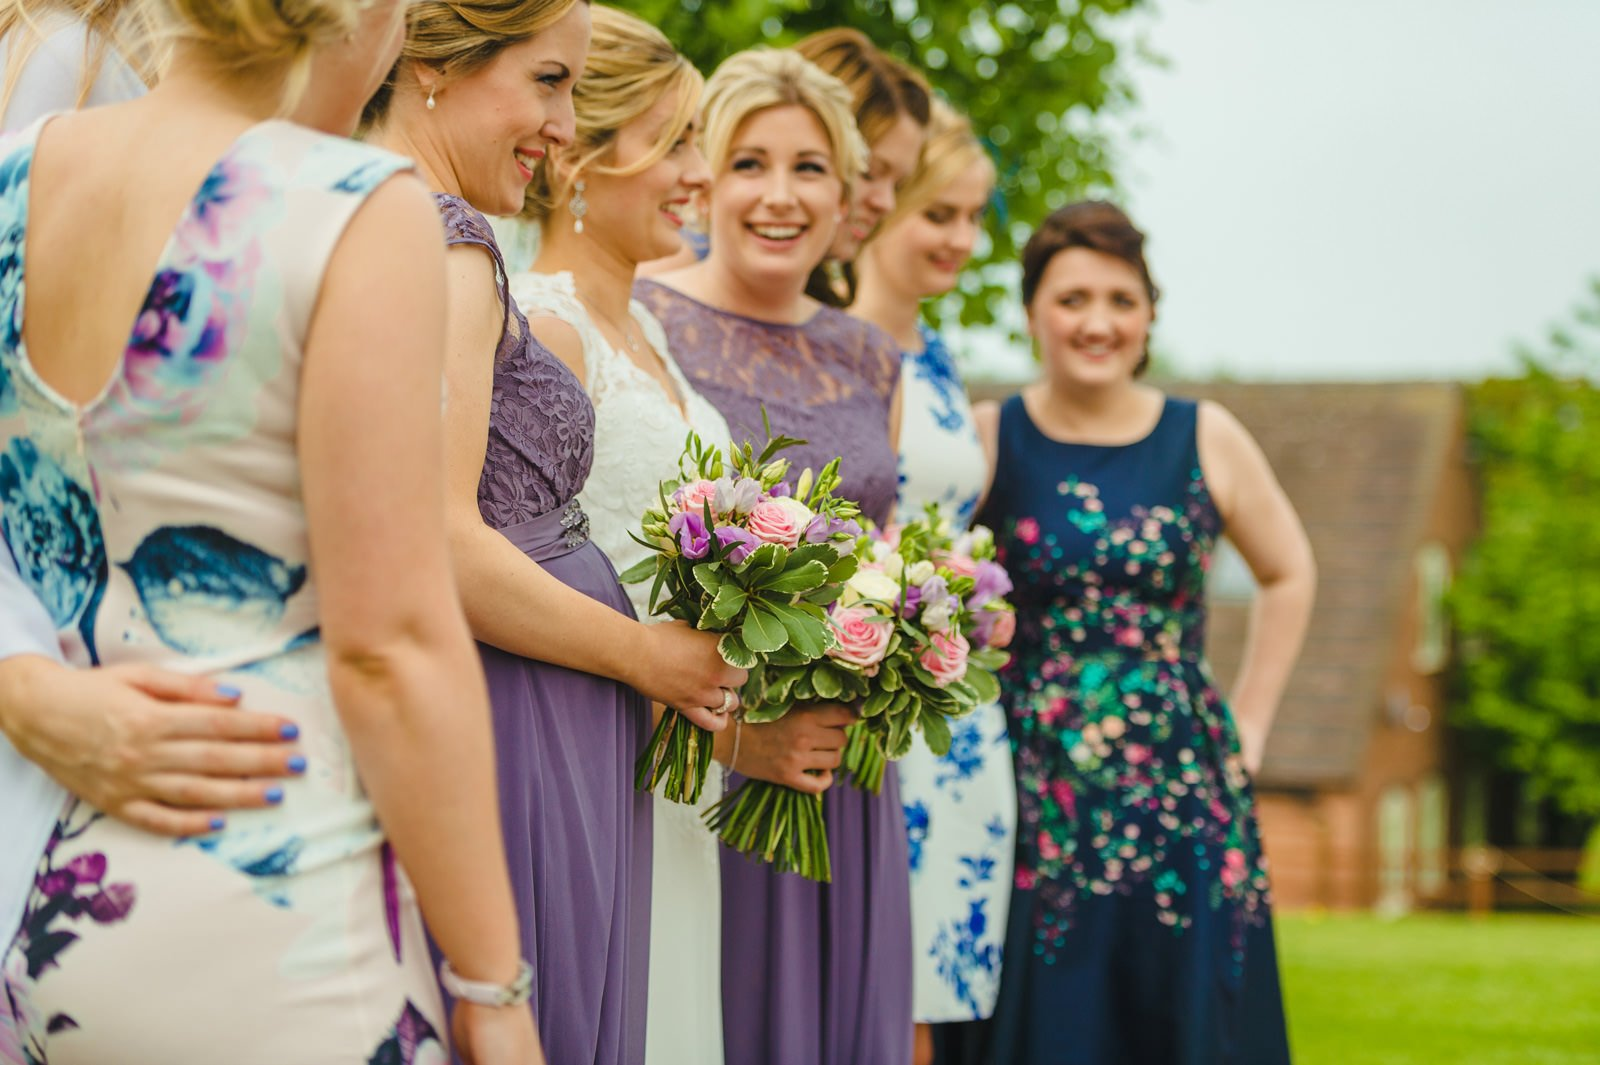 millers of netley wedding 61 - Millers Of Netley wedding, Dorrington, Shrewsbury | Emma + Ben